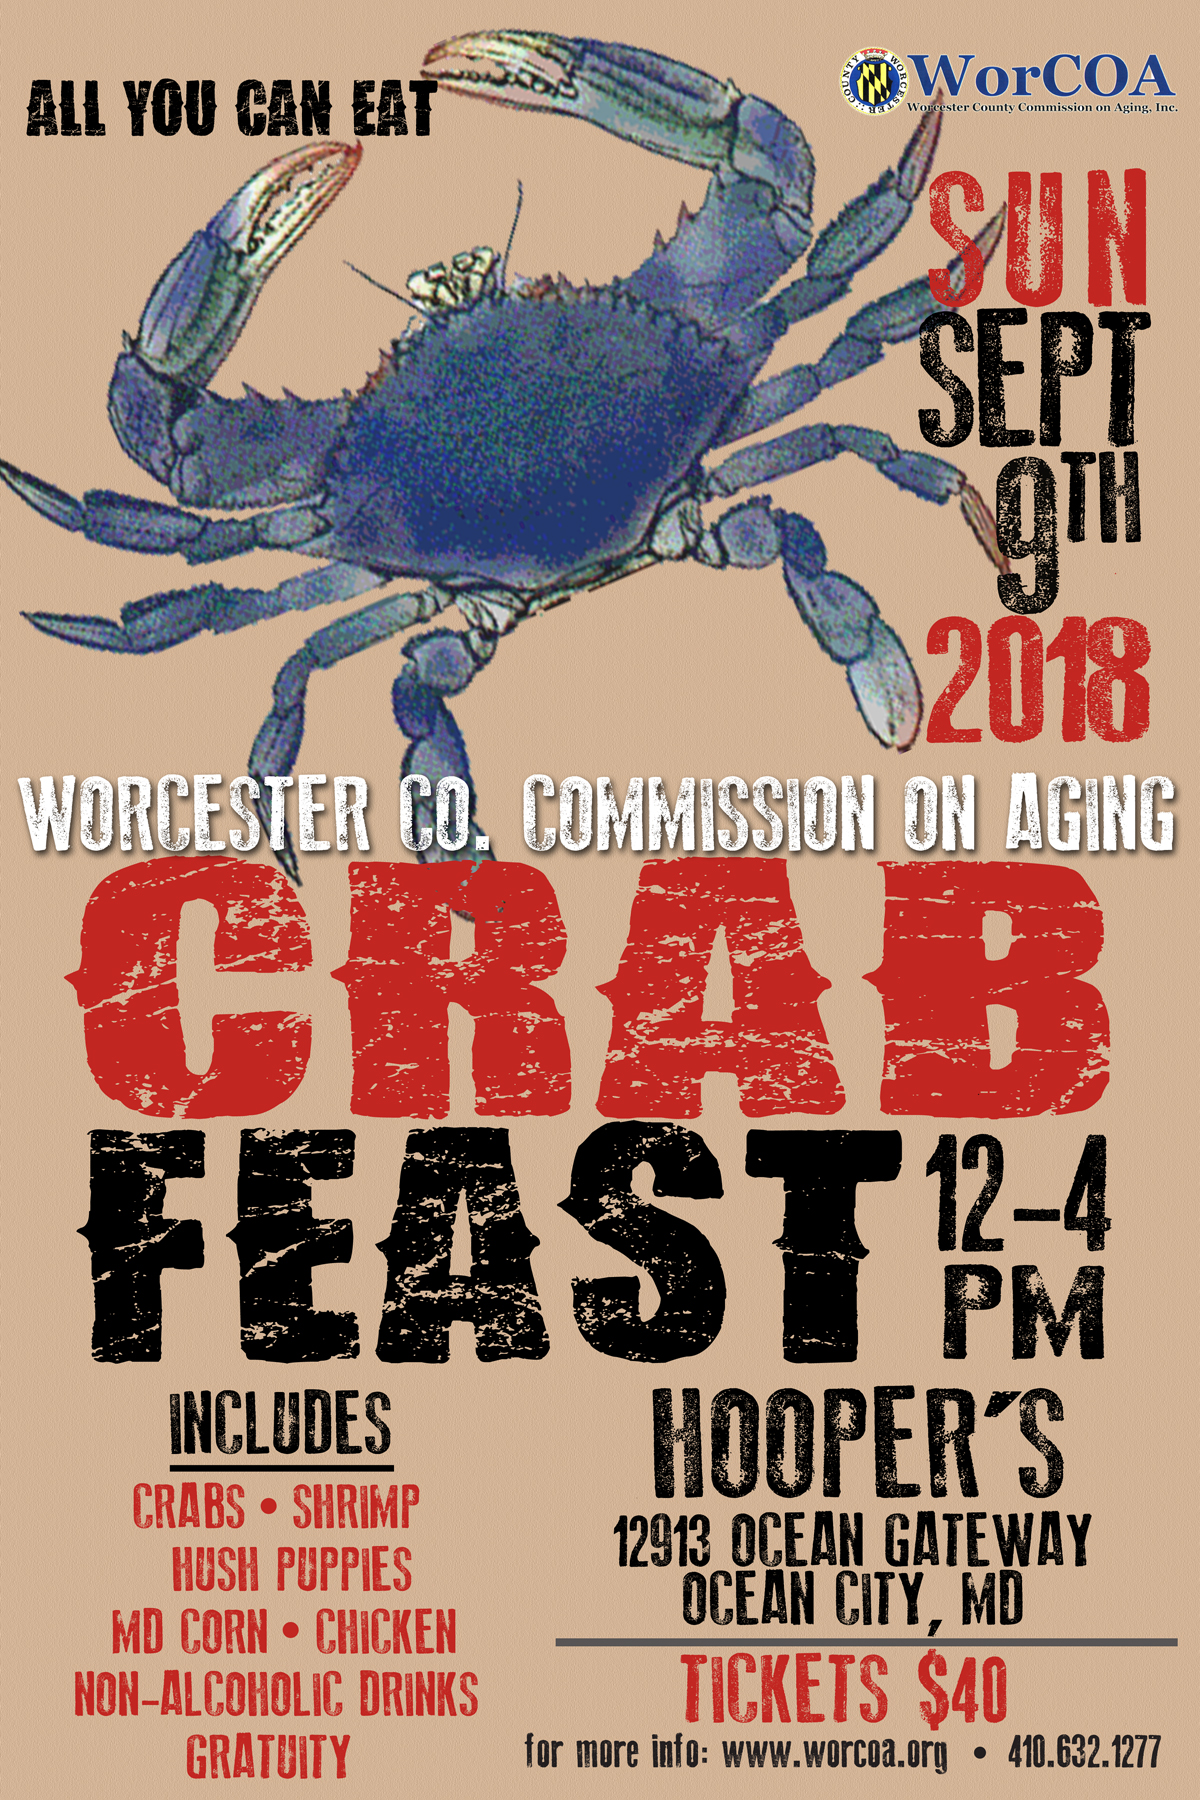 crab feast fundraiser for the worcester county commission on aging